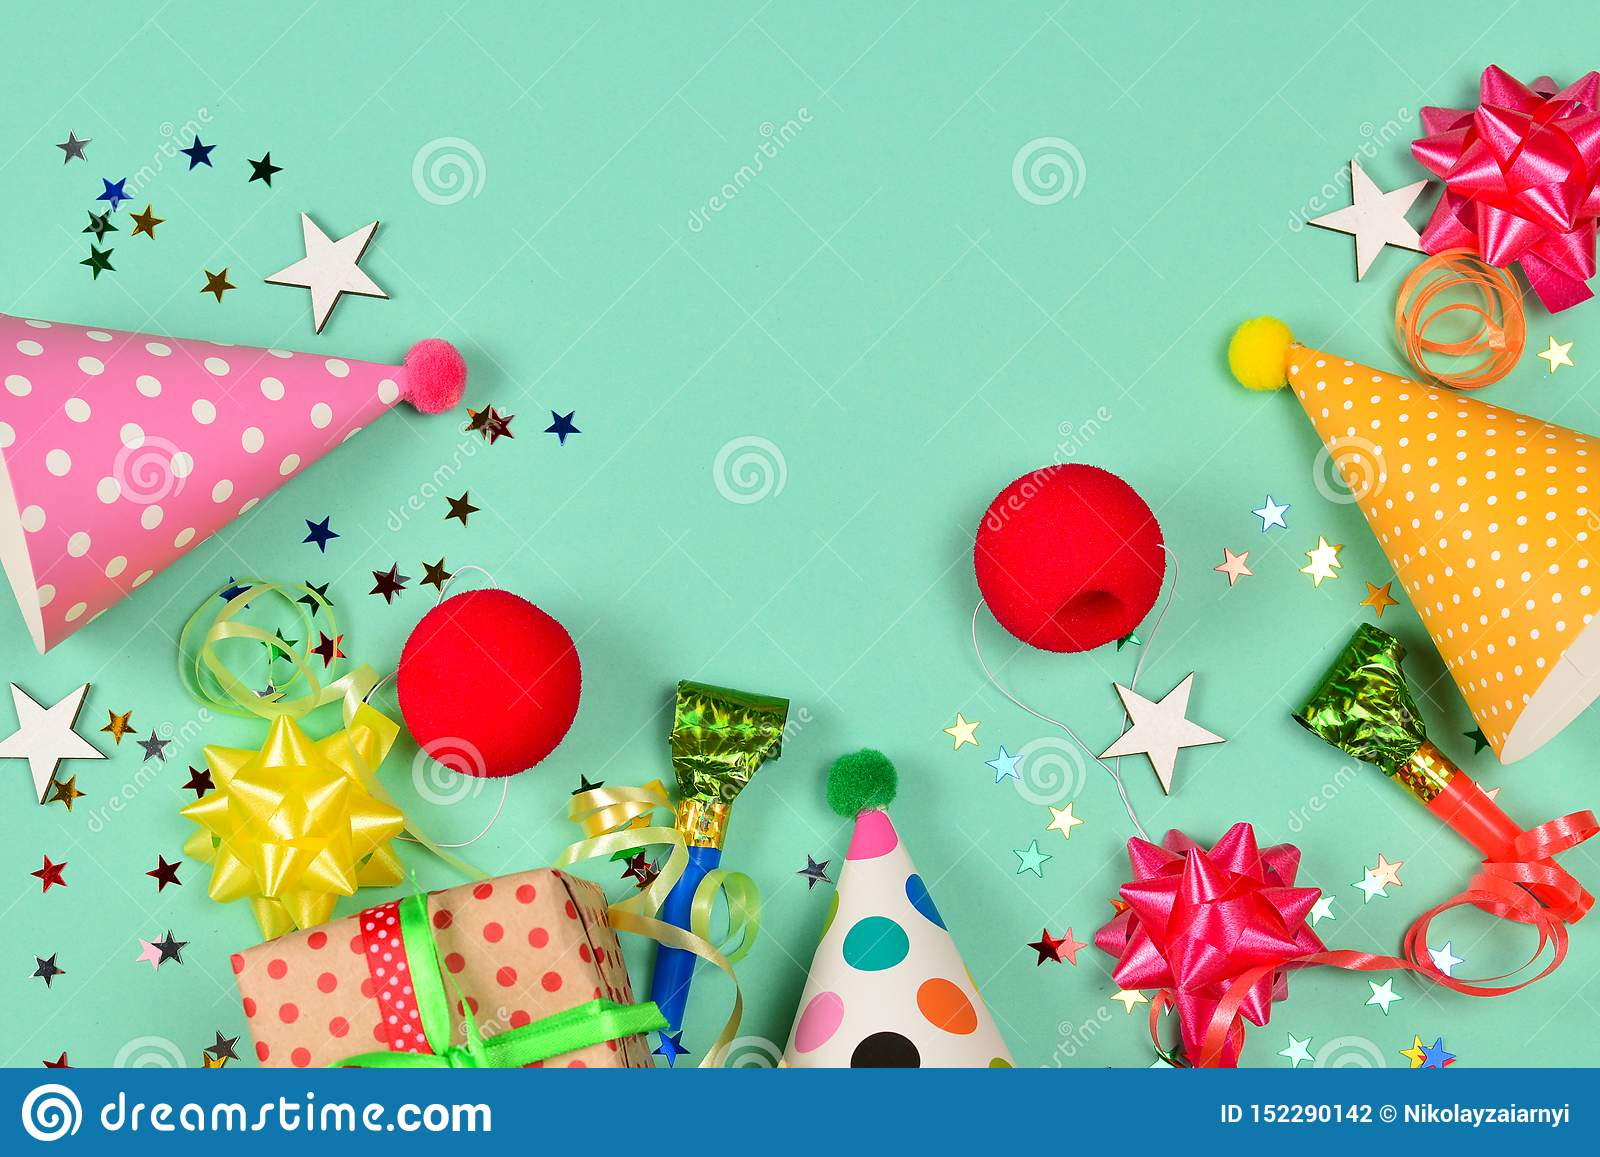 Birthday caps, present, confetti, ribbons, stars, clown noses on a green background. Space for text or design